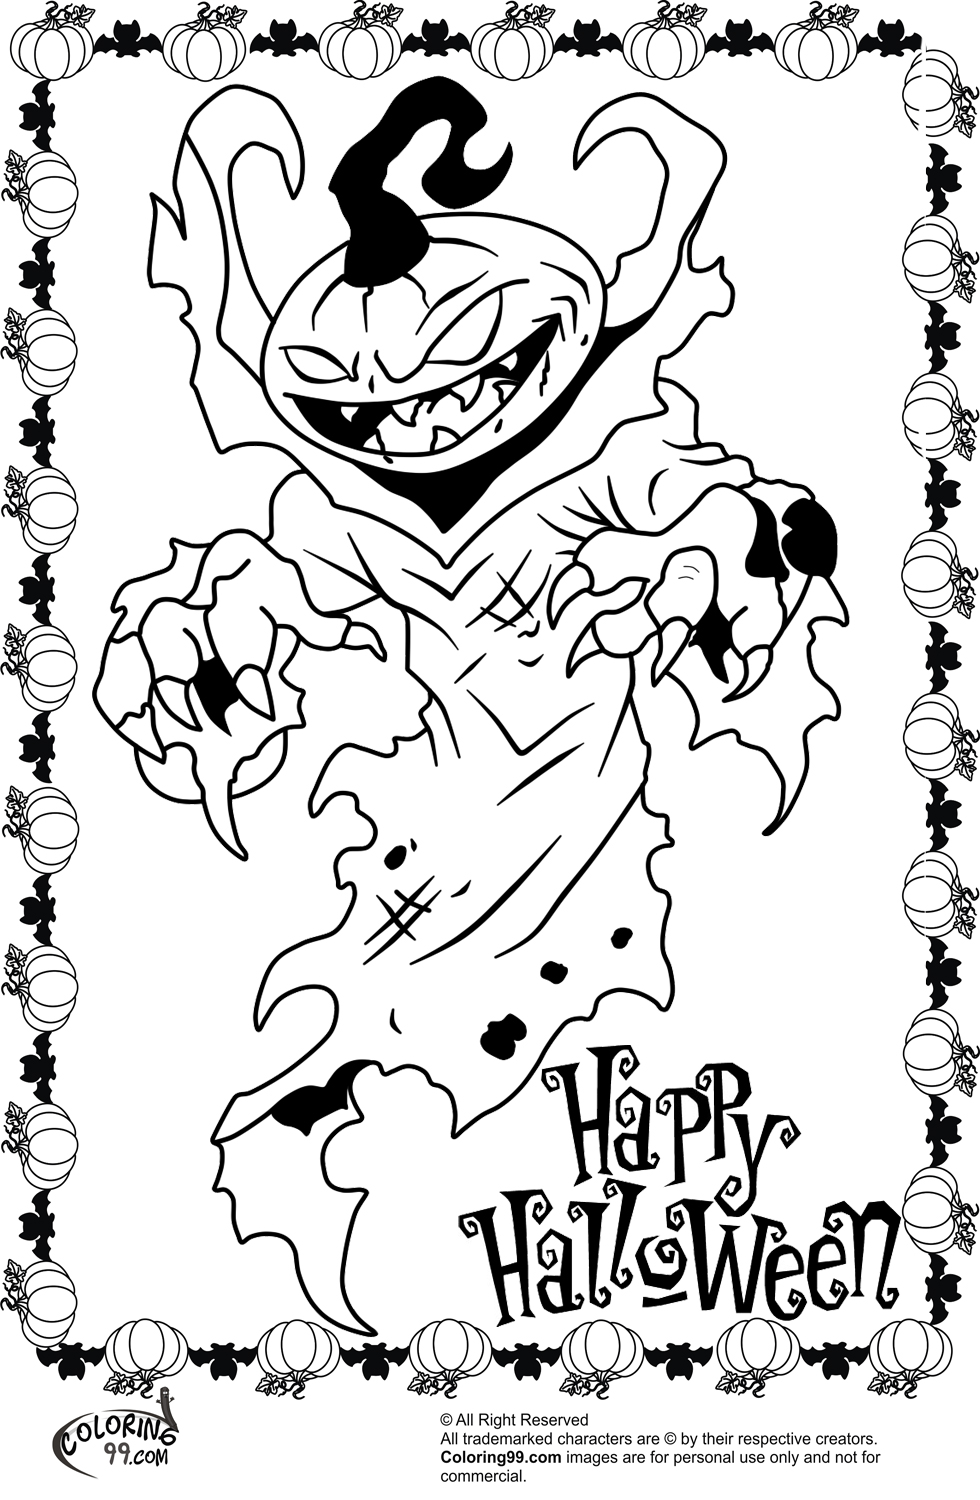 coloring pictures for halloween halloween coloring pictures halloween coloring for